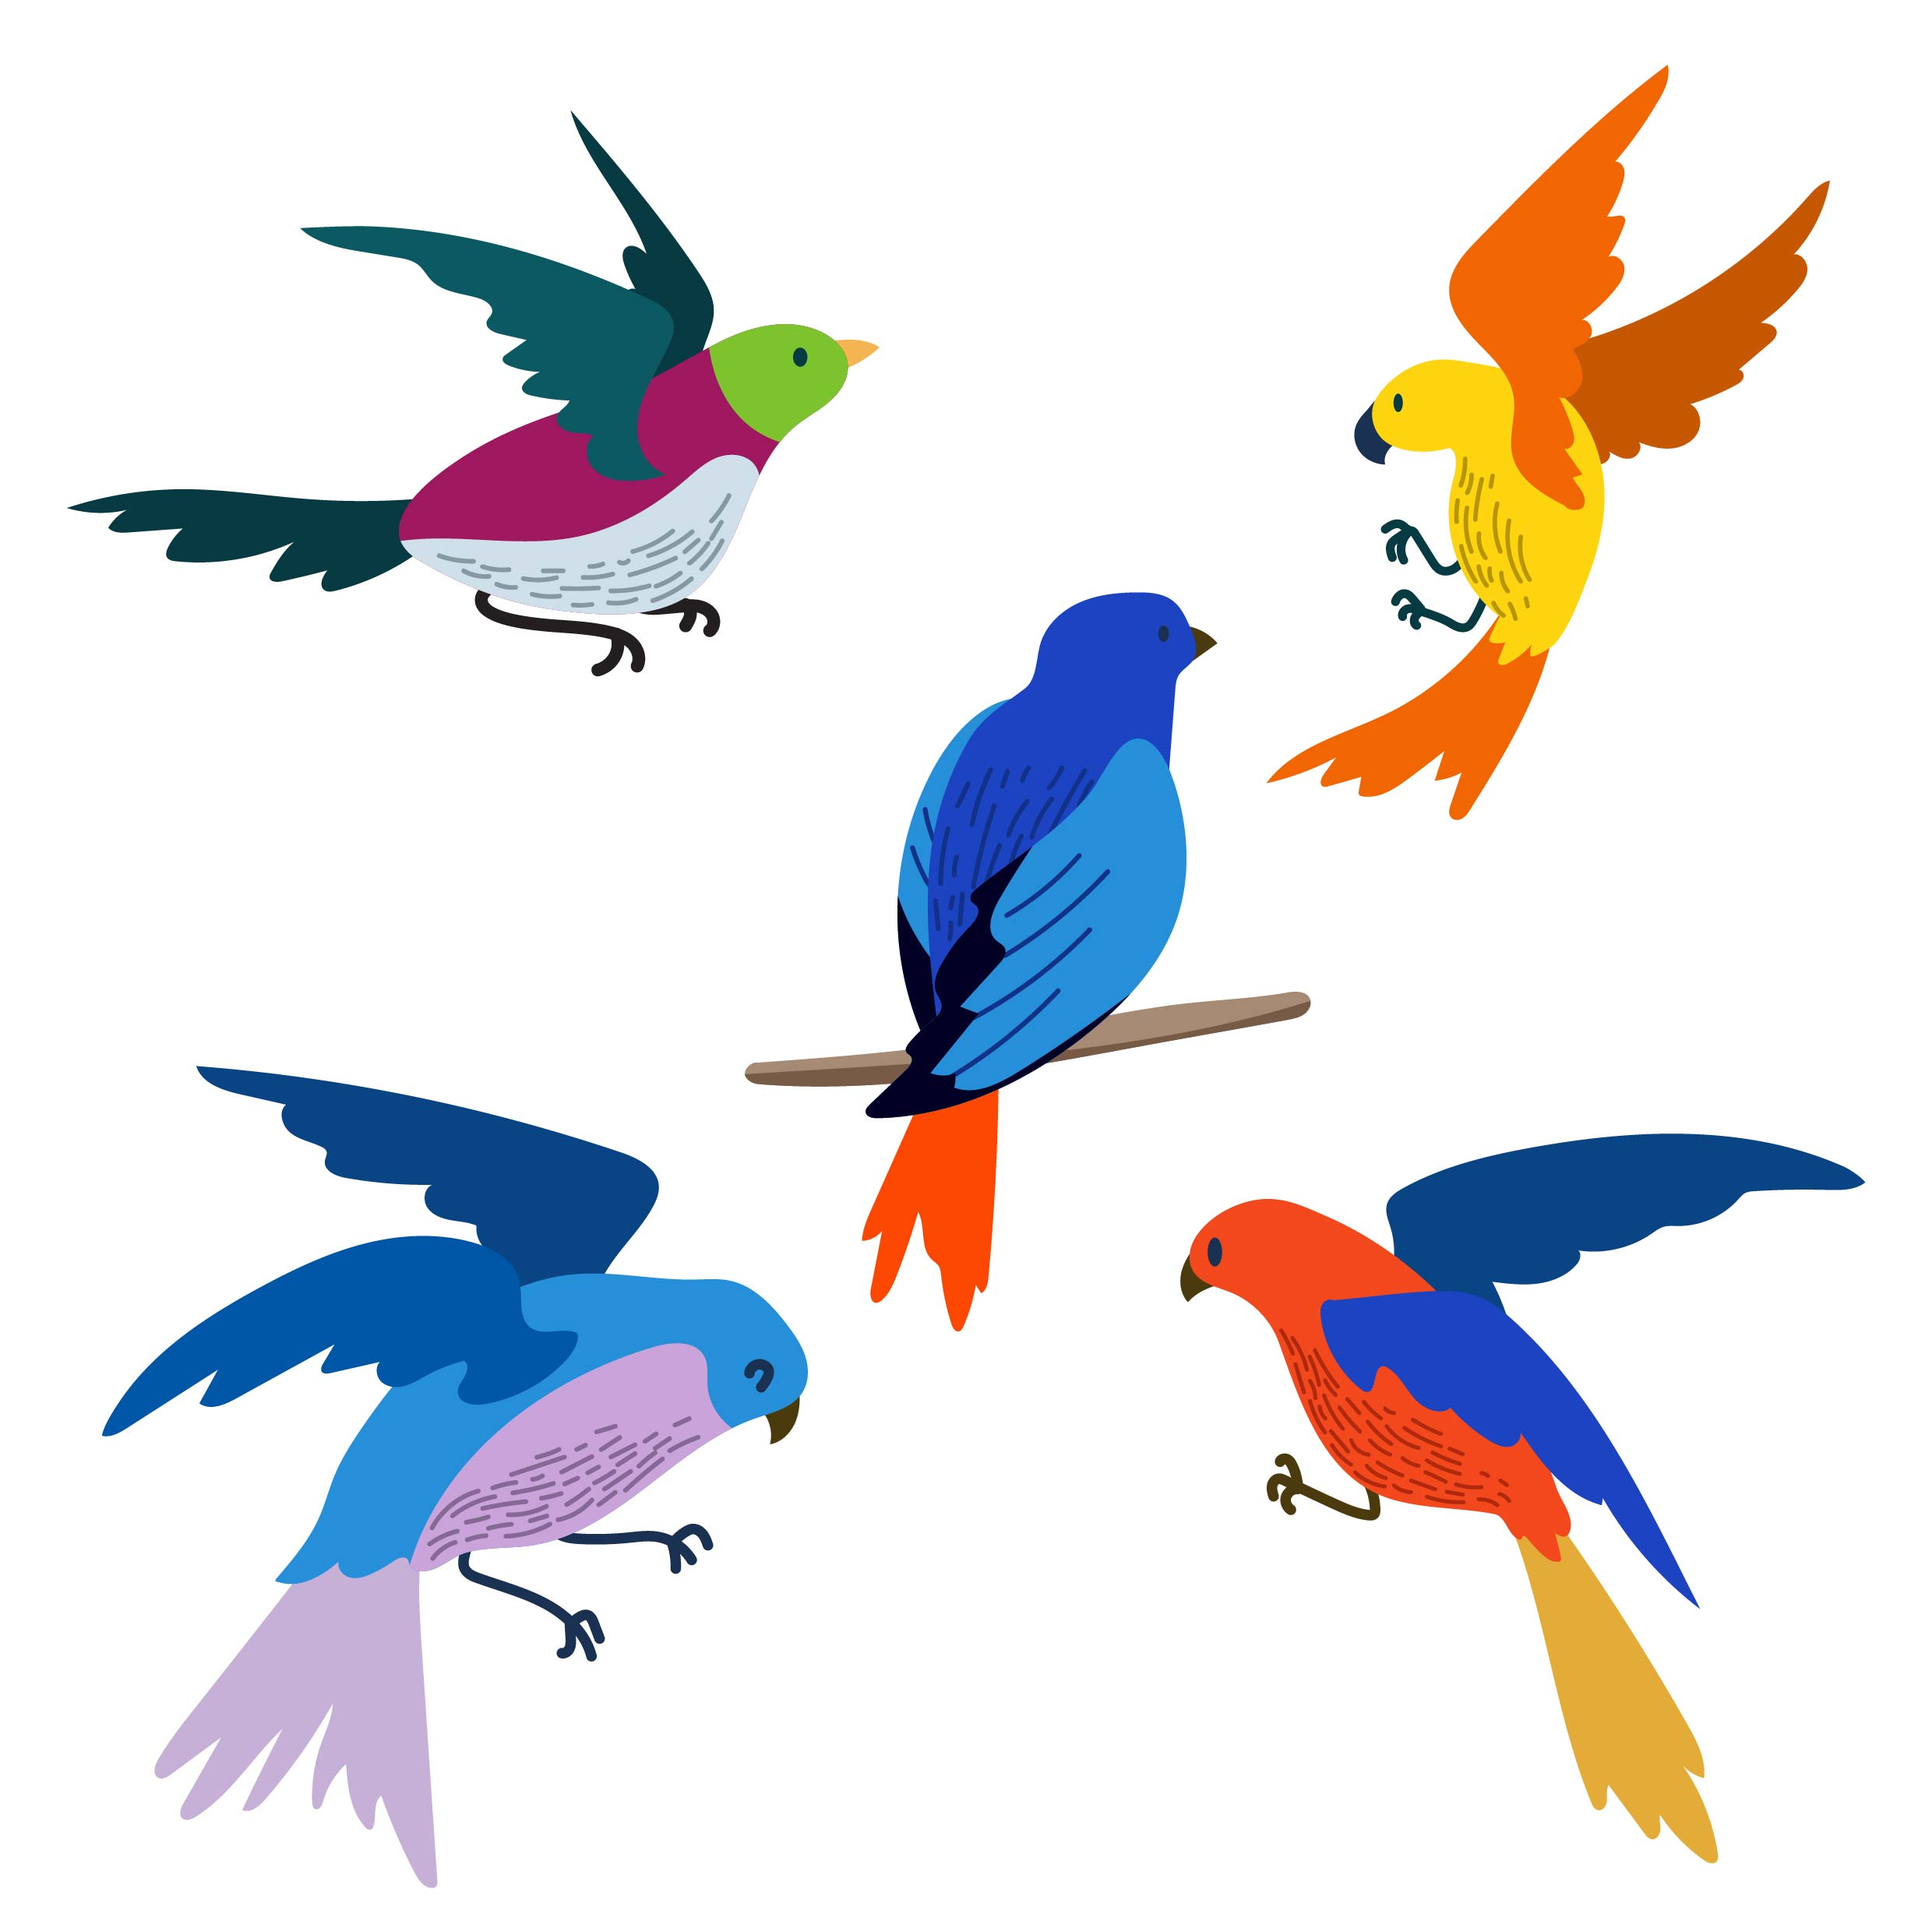 Flying Bird Clipart Set - Download Free Vectors, Clipart Graphics & Vector Art